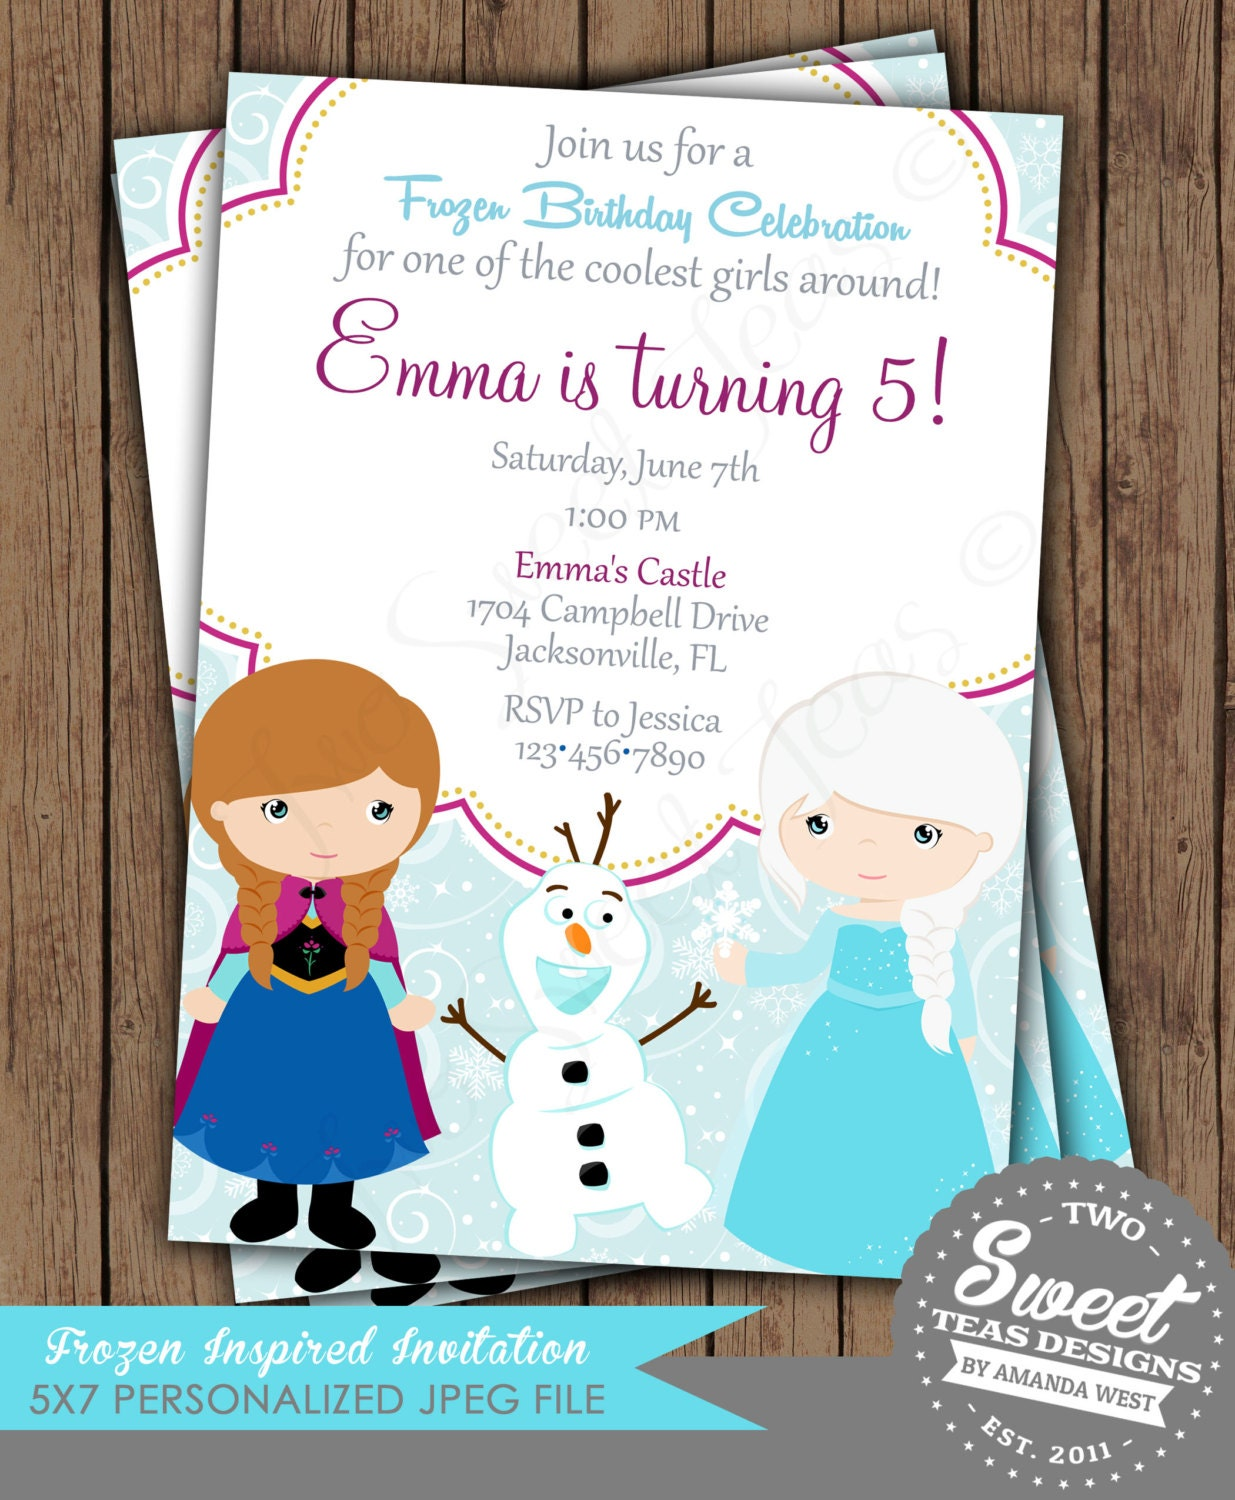 frozen invitation princess anna elsa disney inspired by